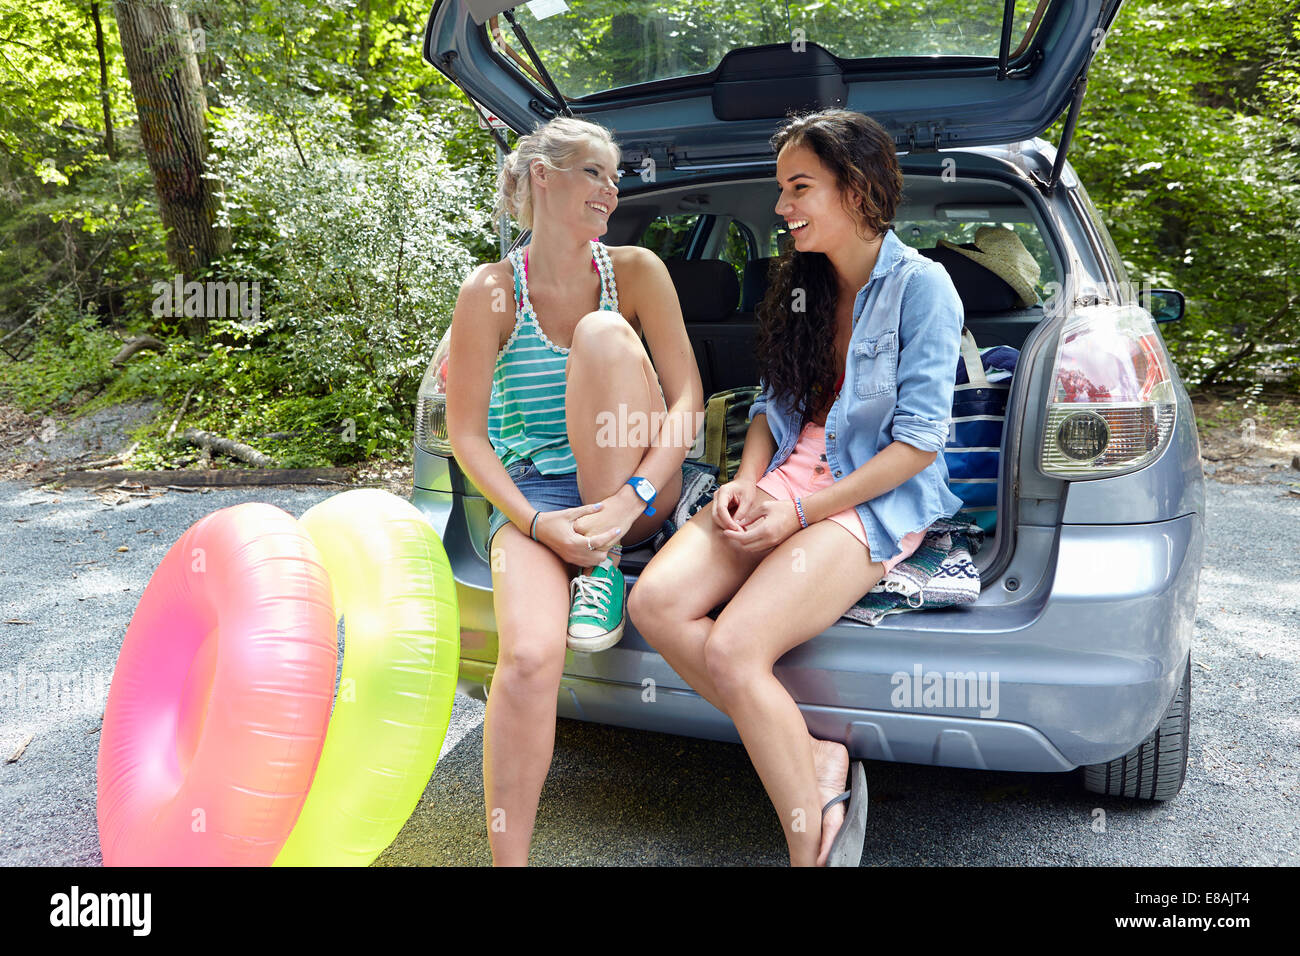 Hikers sitting at rear of car with inflatable rings - Stock Image